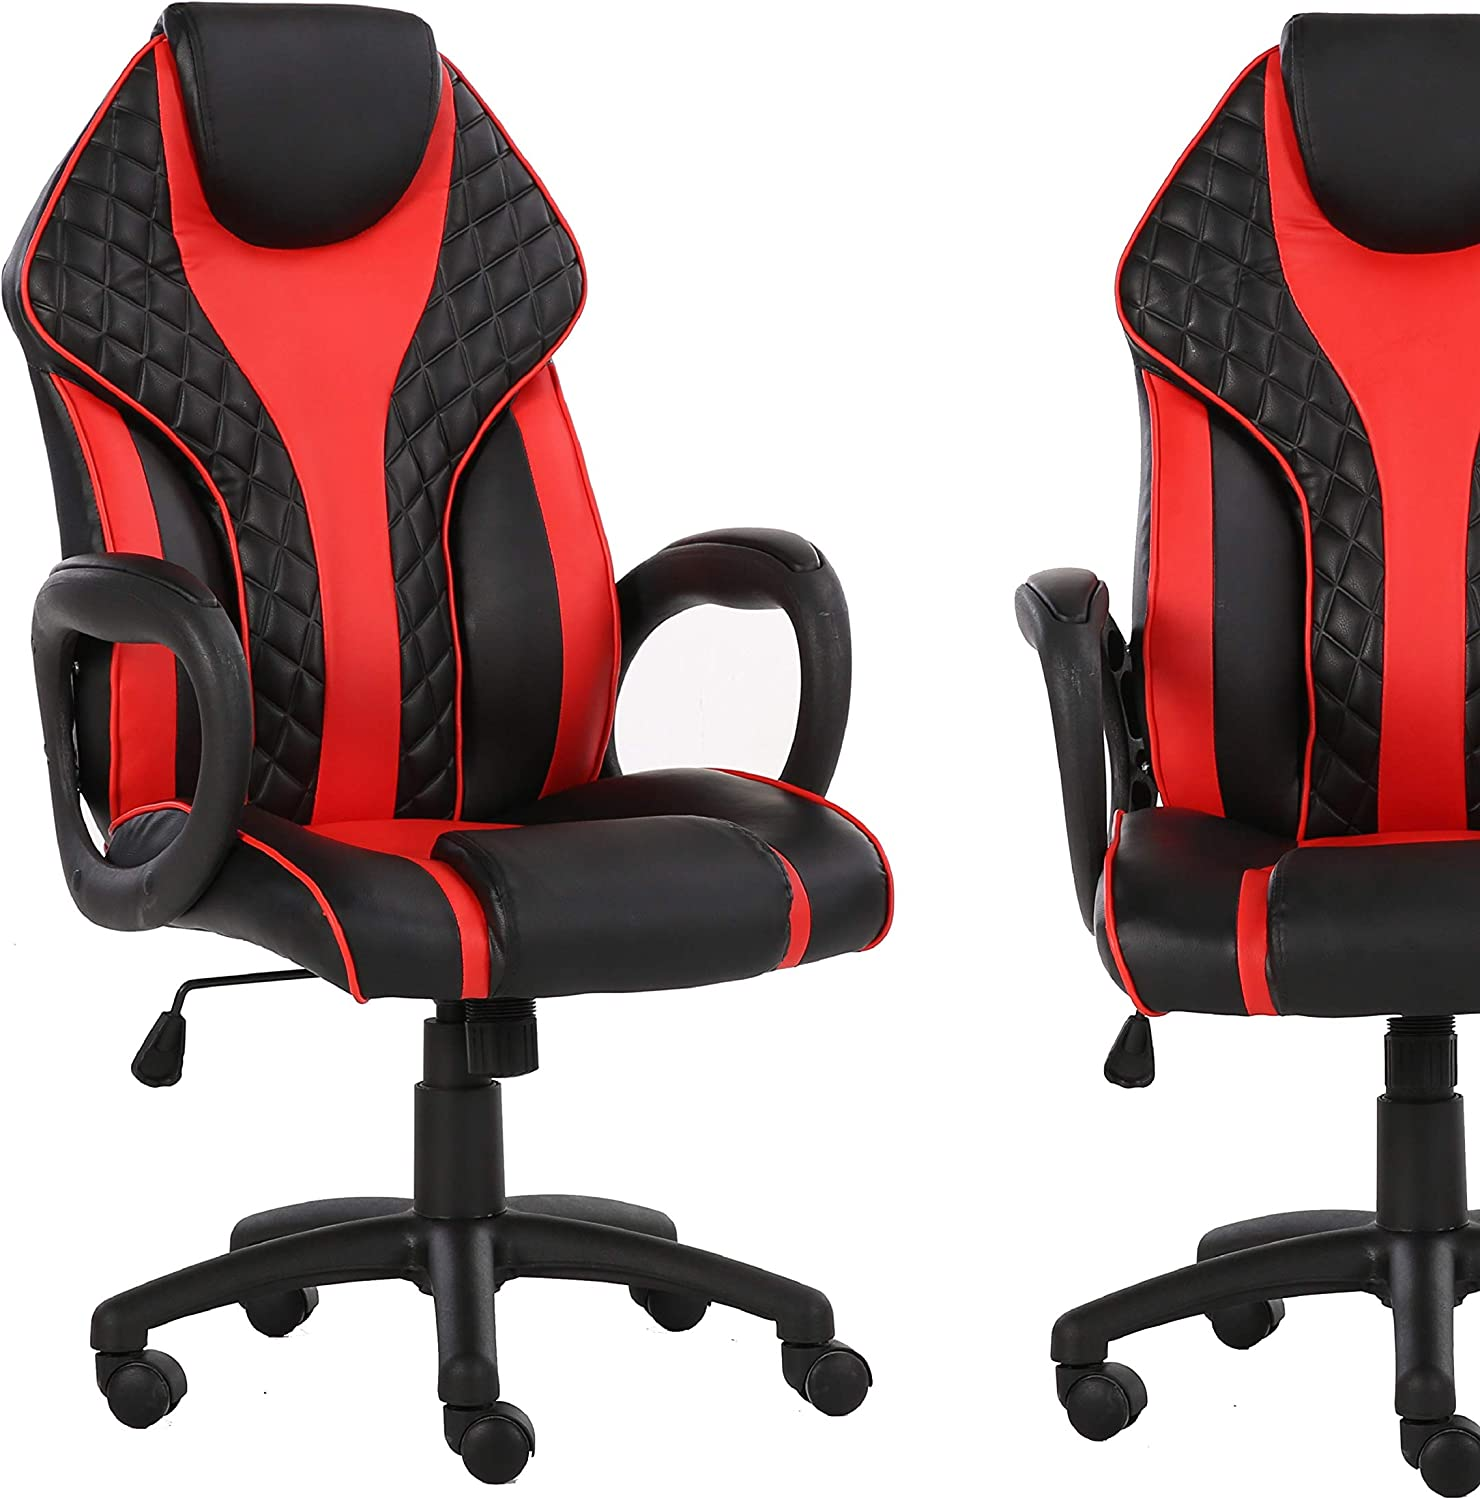 Viscologic Staple Gaming Racing Sports Styled Home Office Chair (Black & Red)